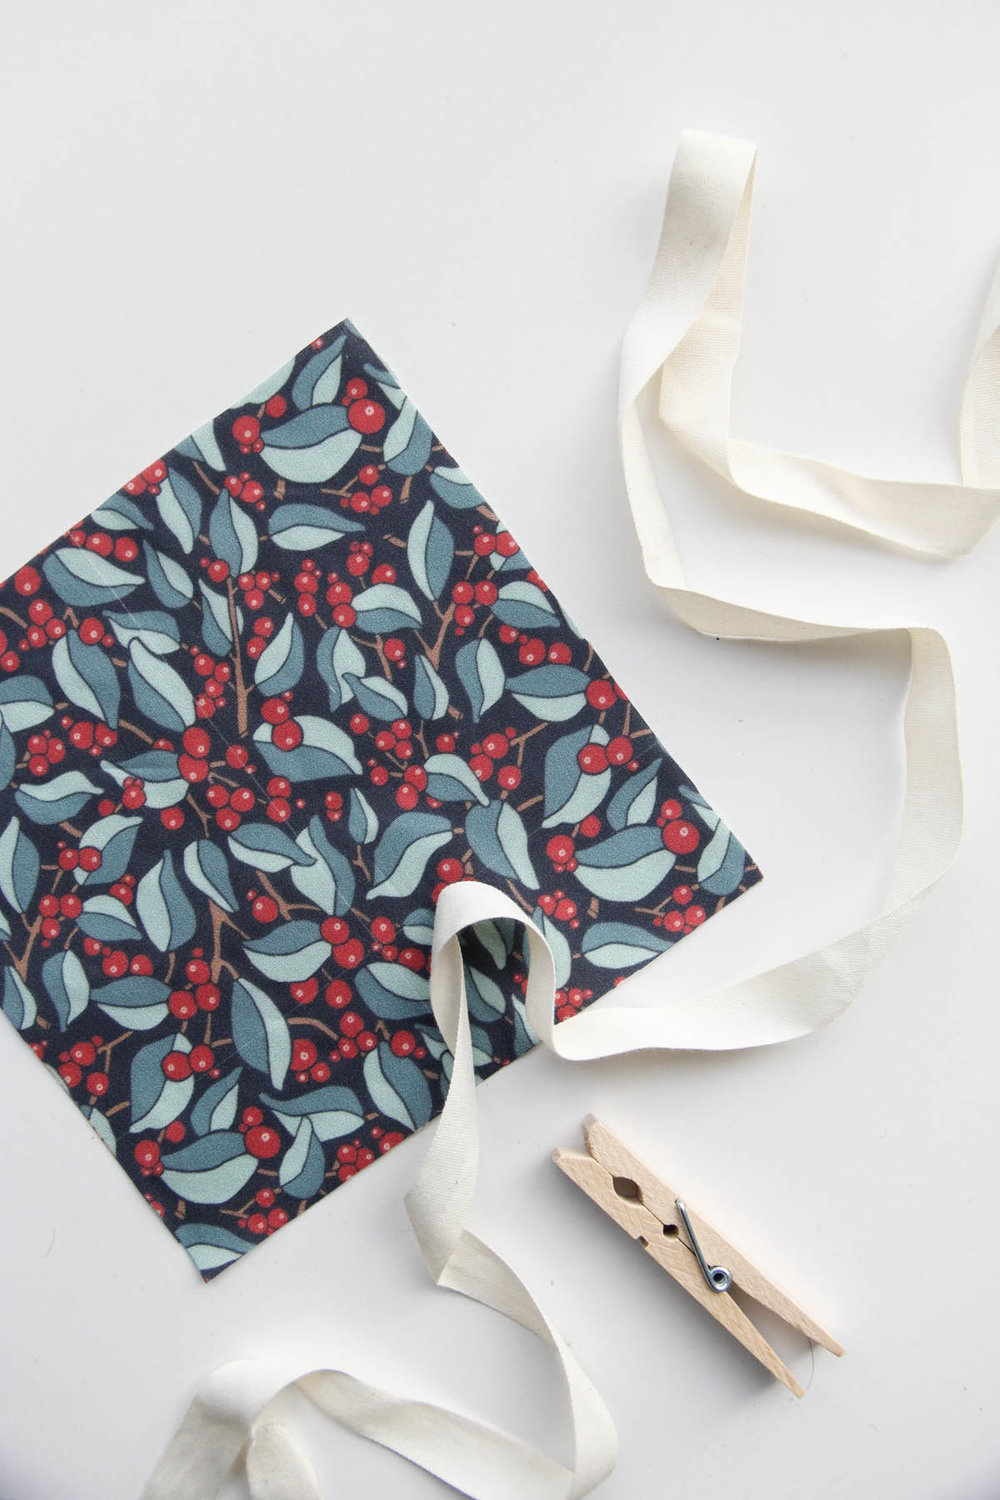 Wintry Woodland: A Holiday Fabric Collection by Jessie Tyree Jenness for Root & Branch Paper Co.